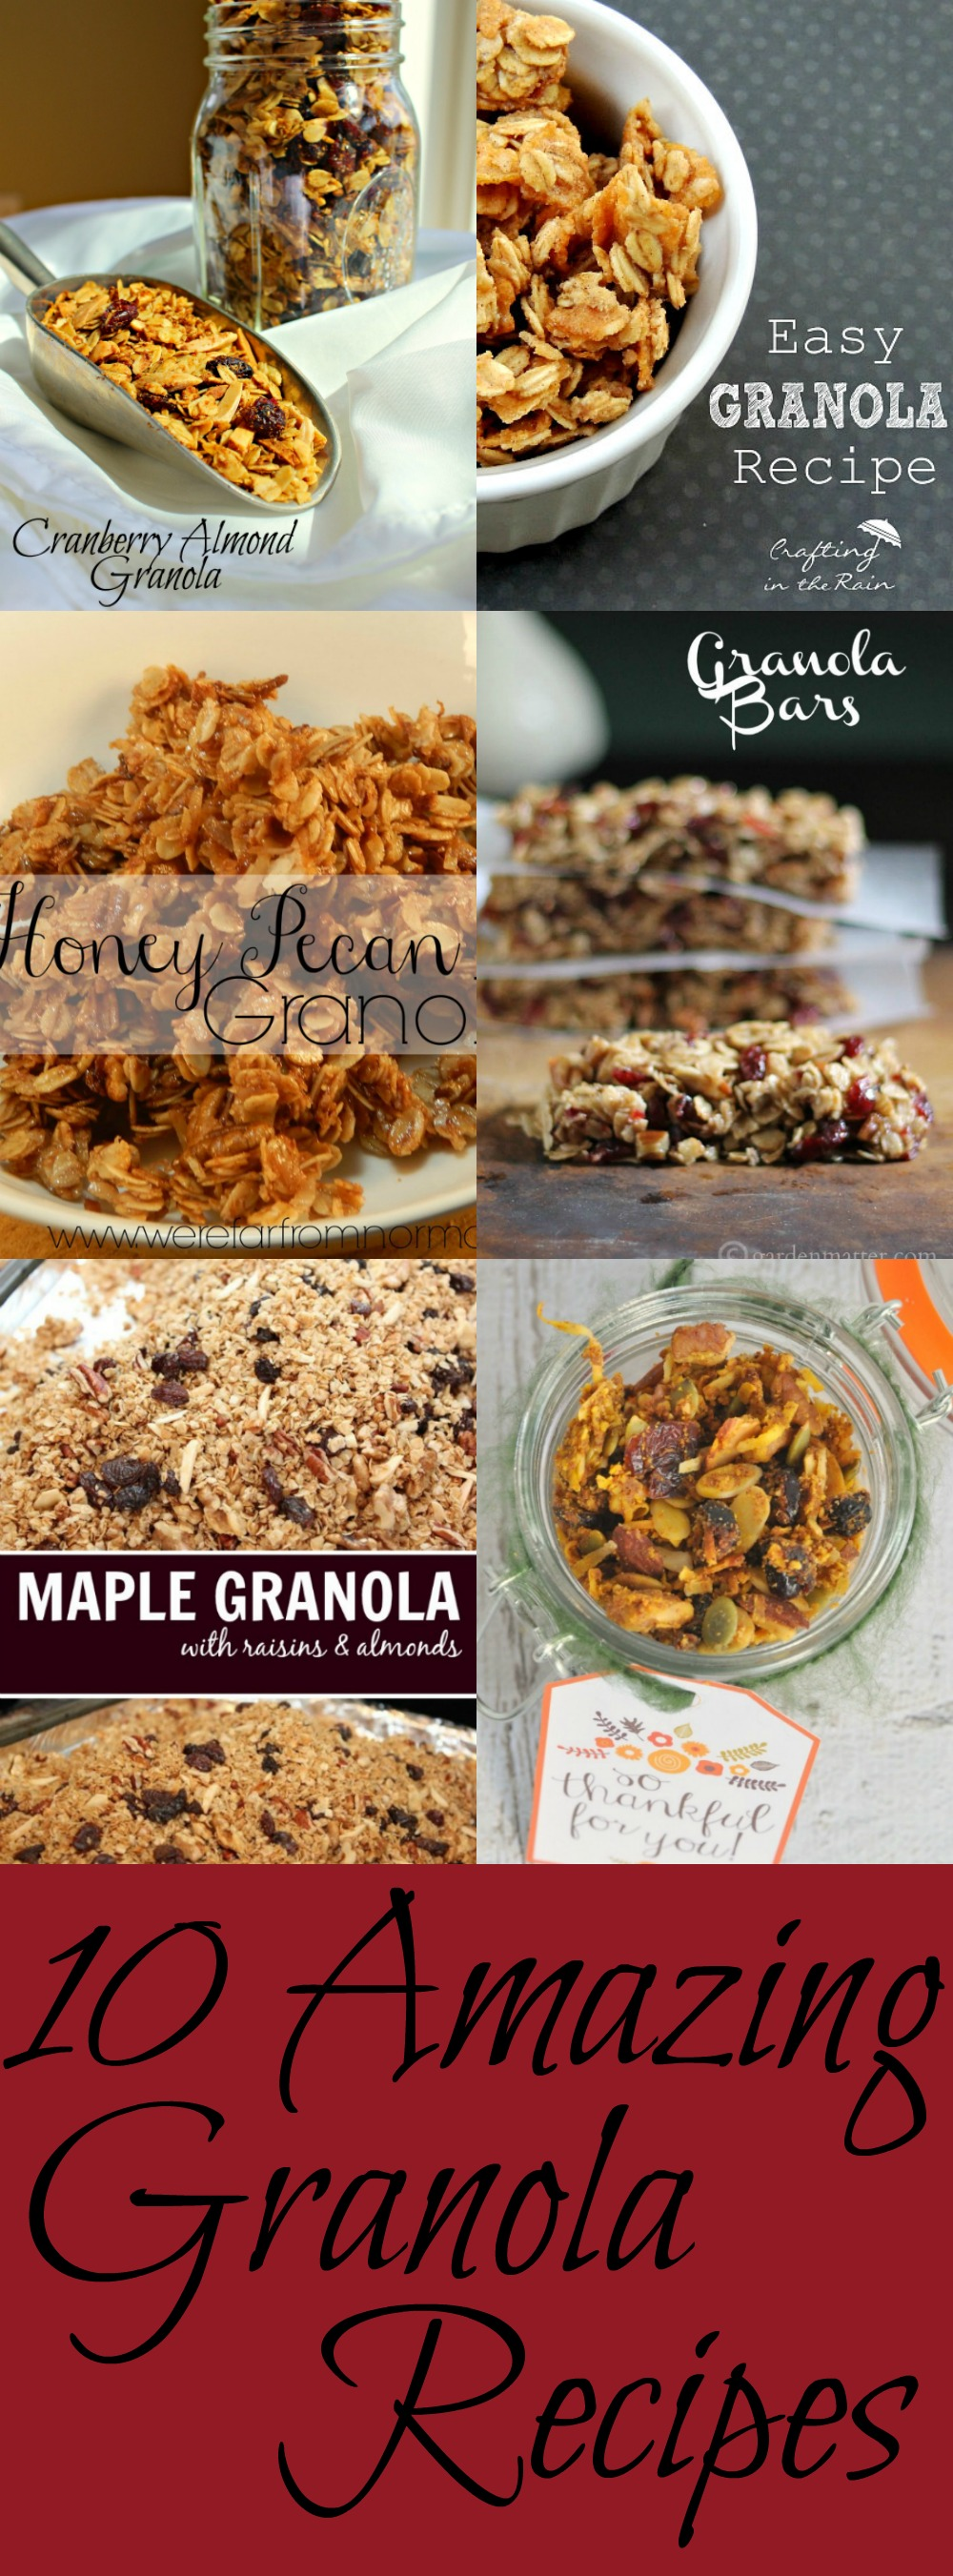 Amazing Granola Recipes Pin